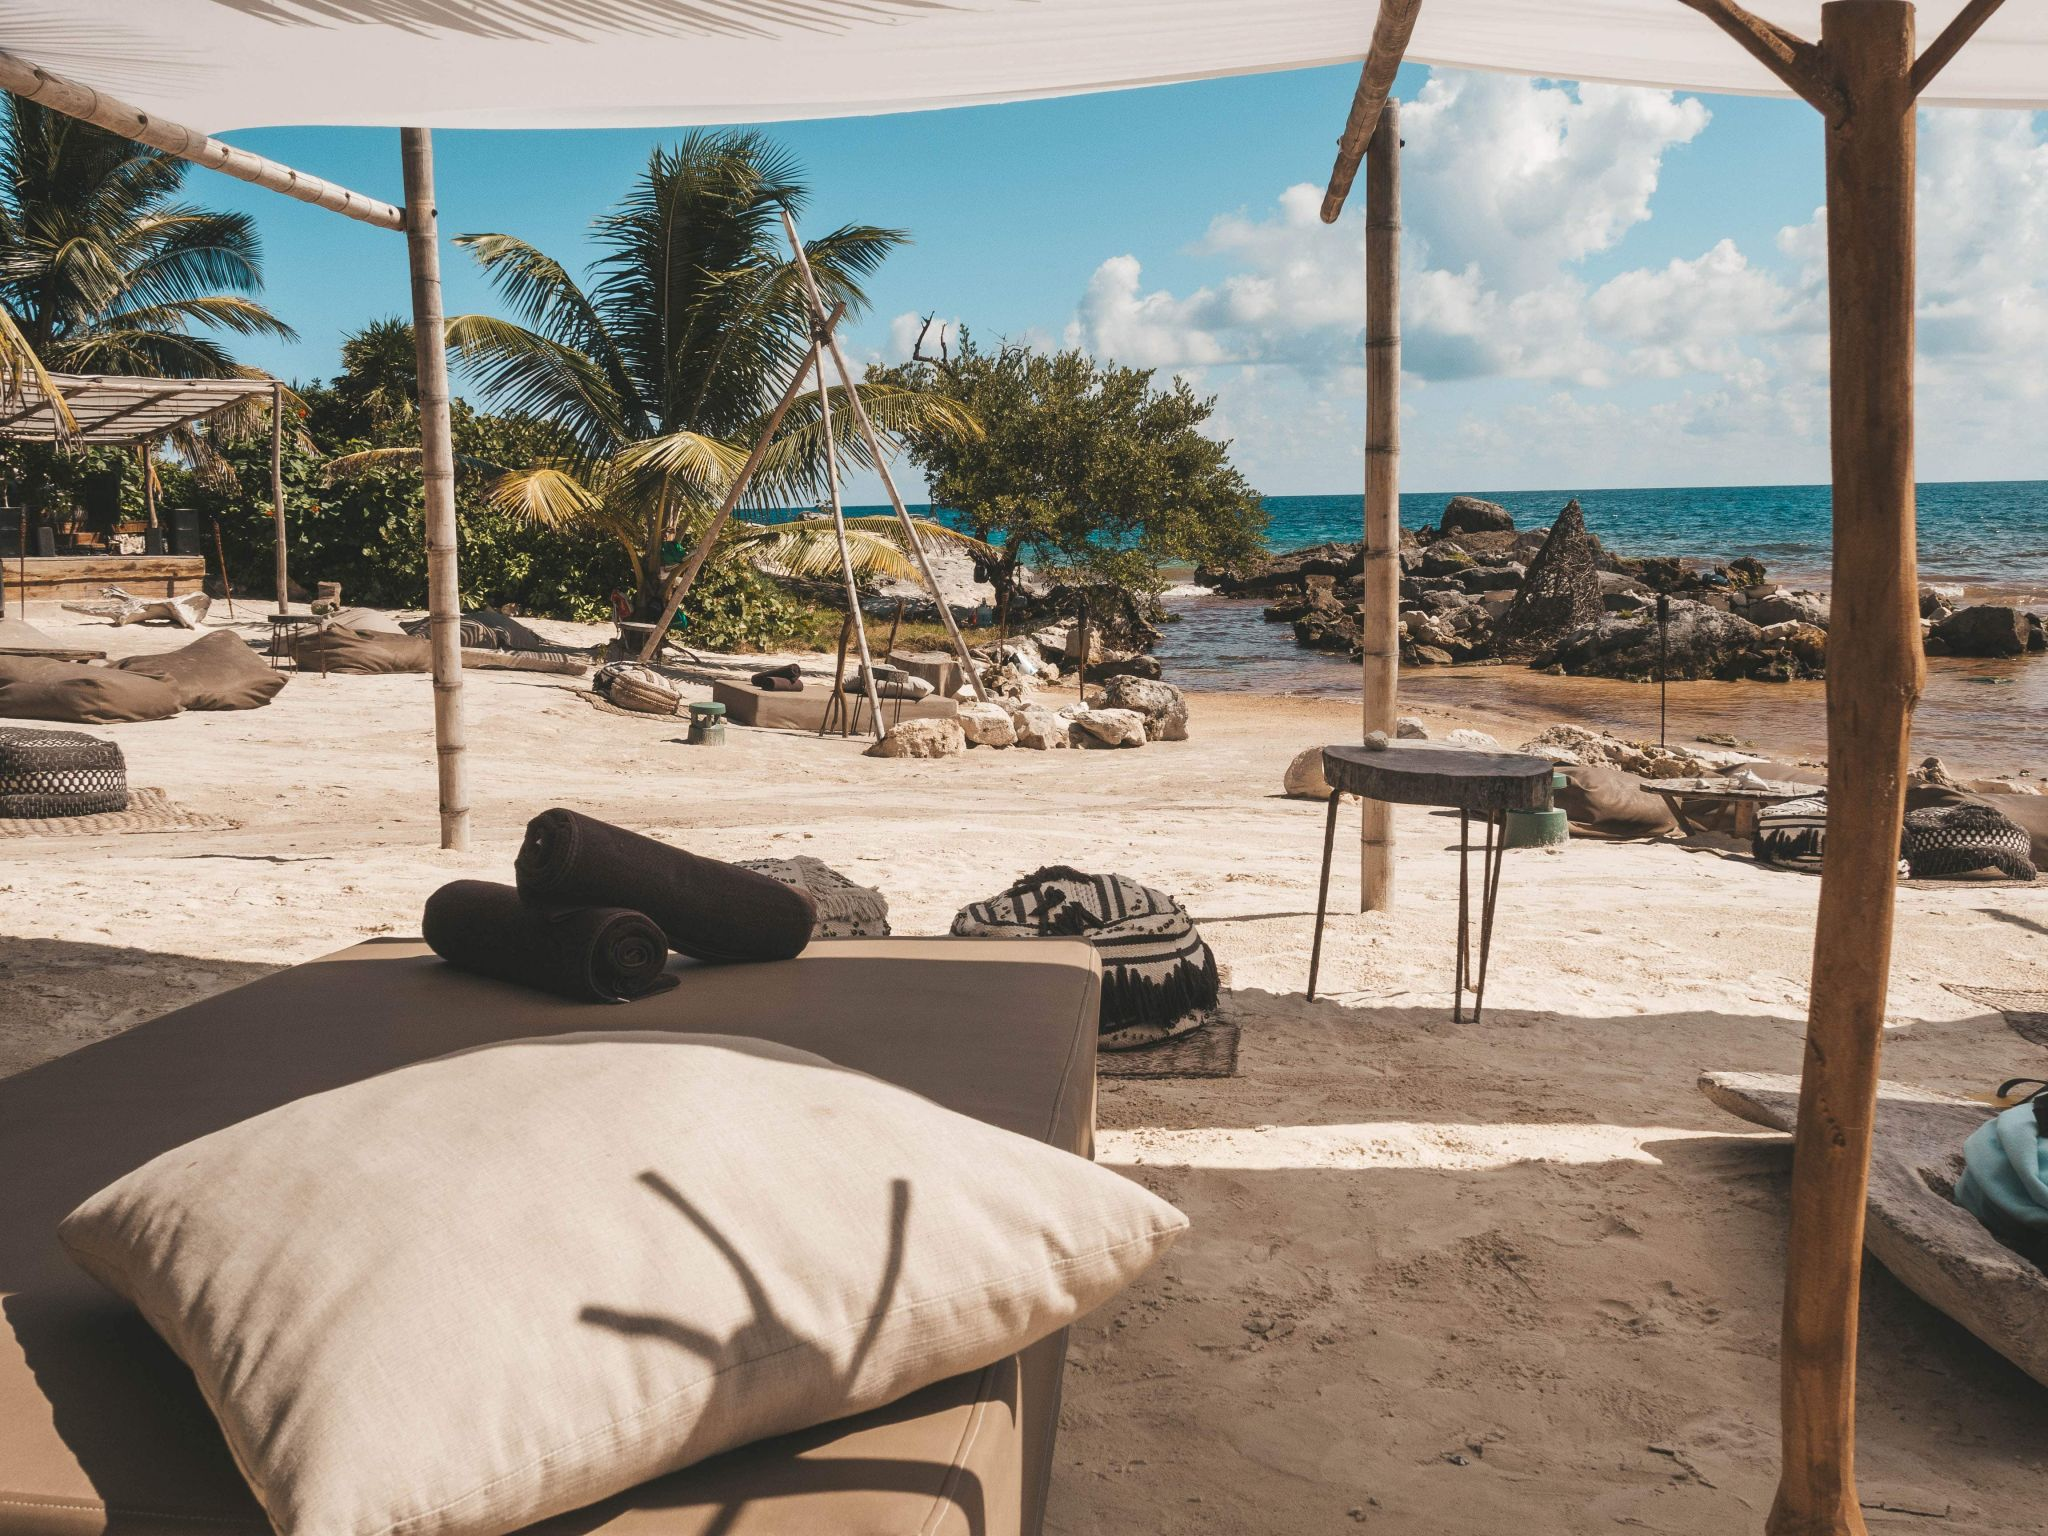 best time to visit tulum Where to stay in Tulum | How to choose the best accommodation for your trip